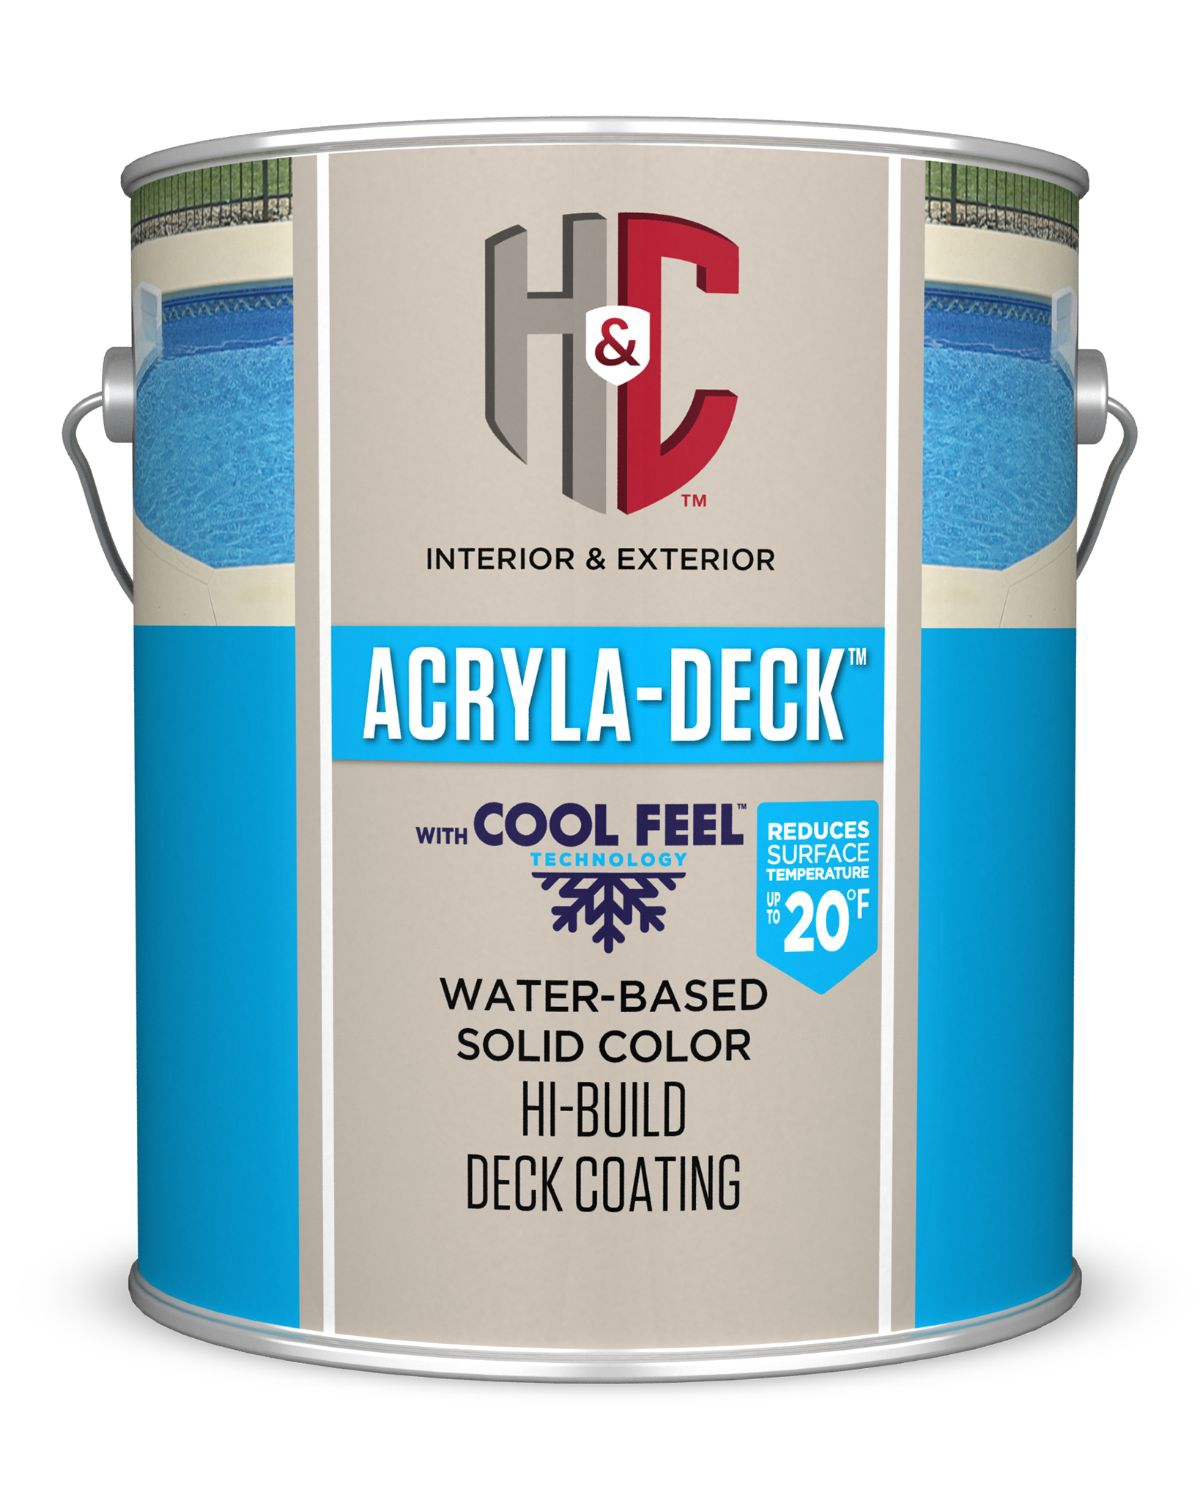 H C Acryla Deck Solid Color Hi Build Coating Sherwin Williams